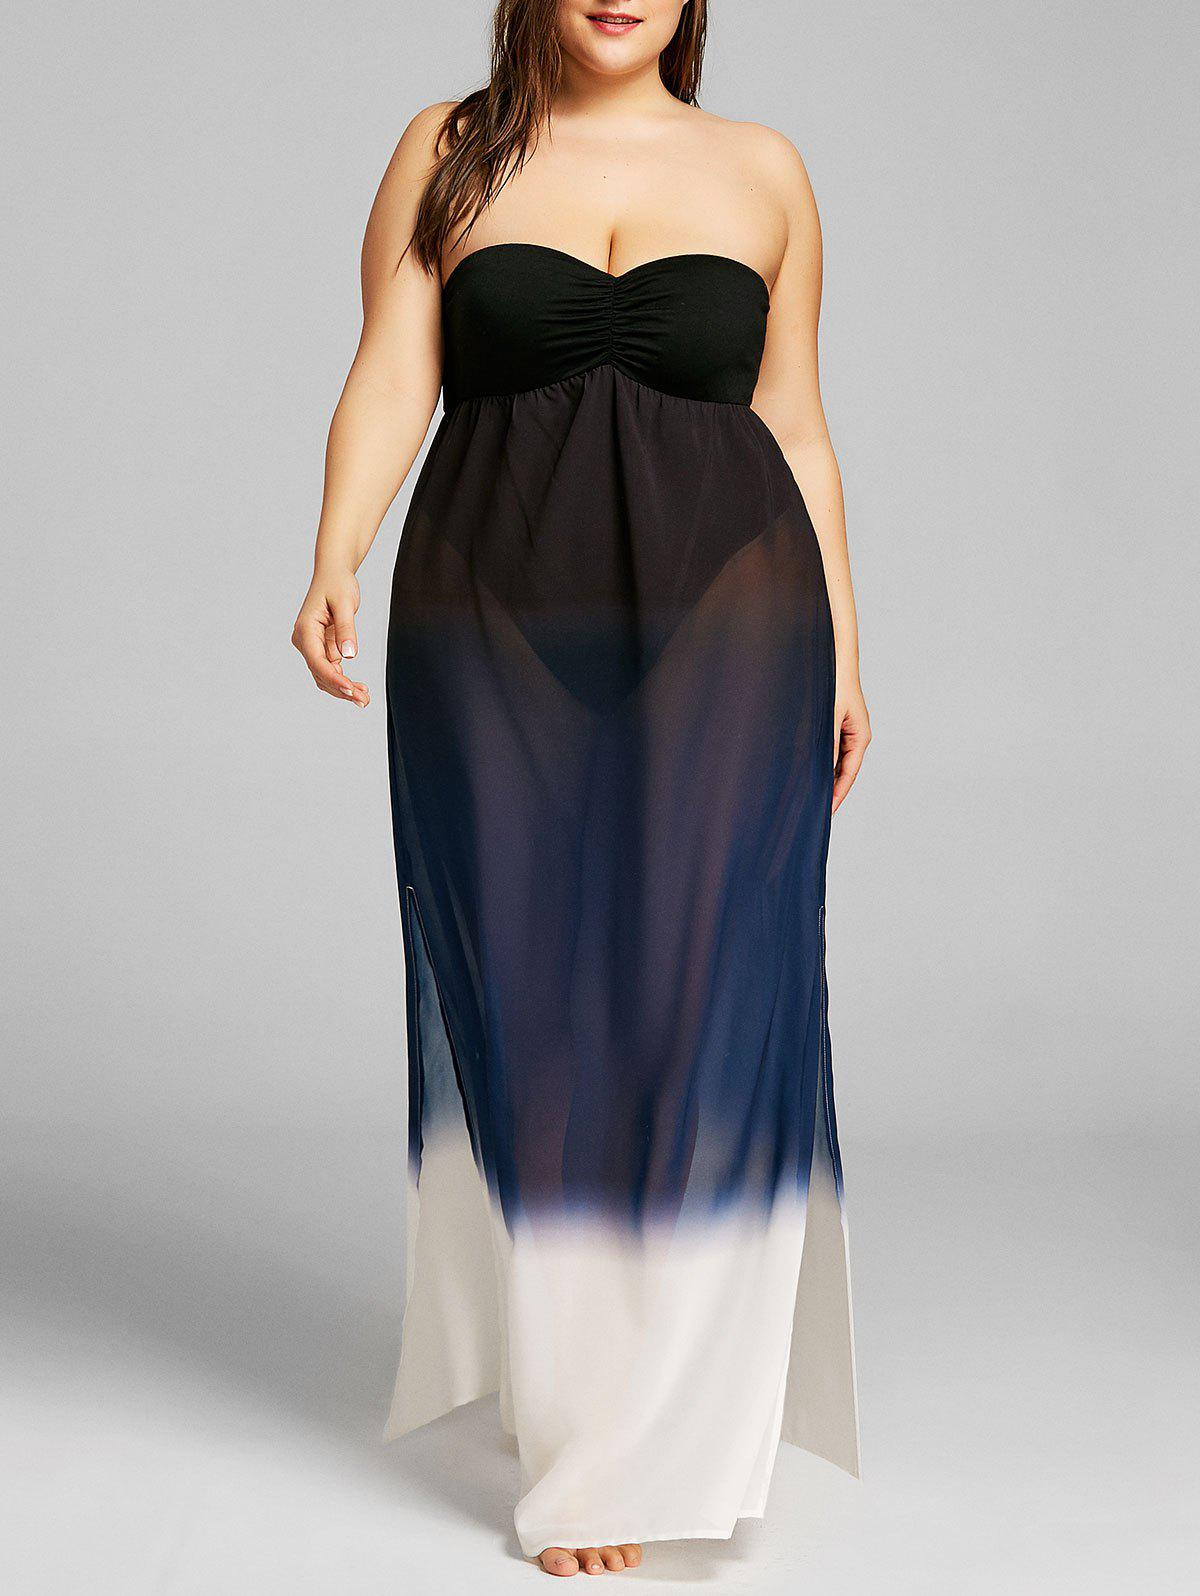 Fancy Plus Size Gradient Color High Split Strapless Dress